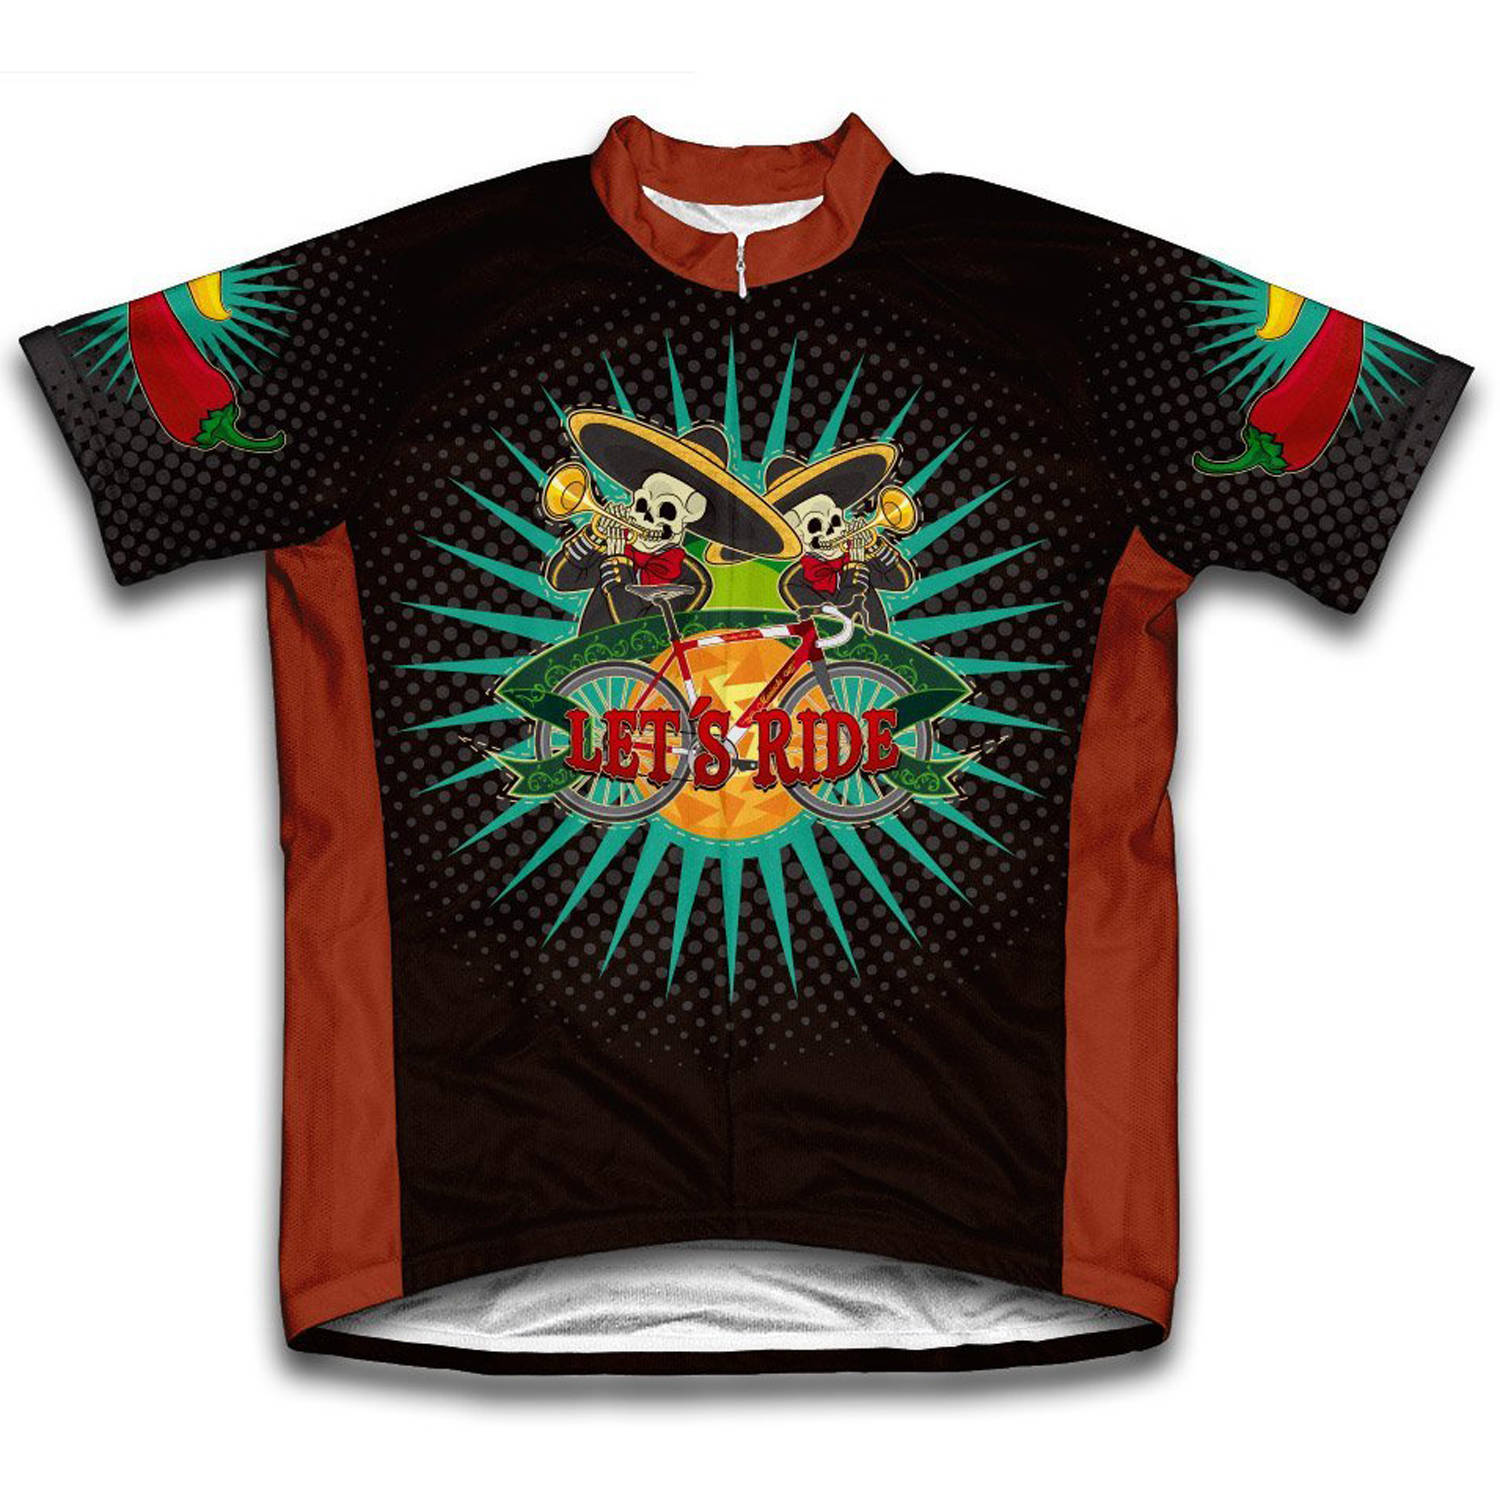 Mariachi Microfiber Short-Sleeved Cycling Jersey, Assorted Sizes